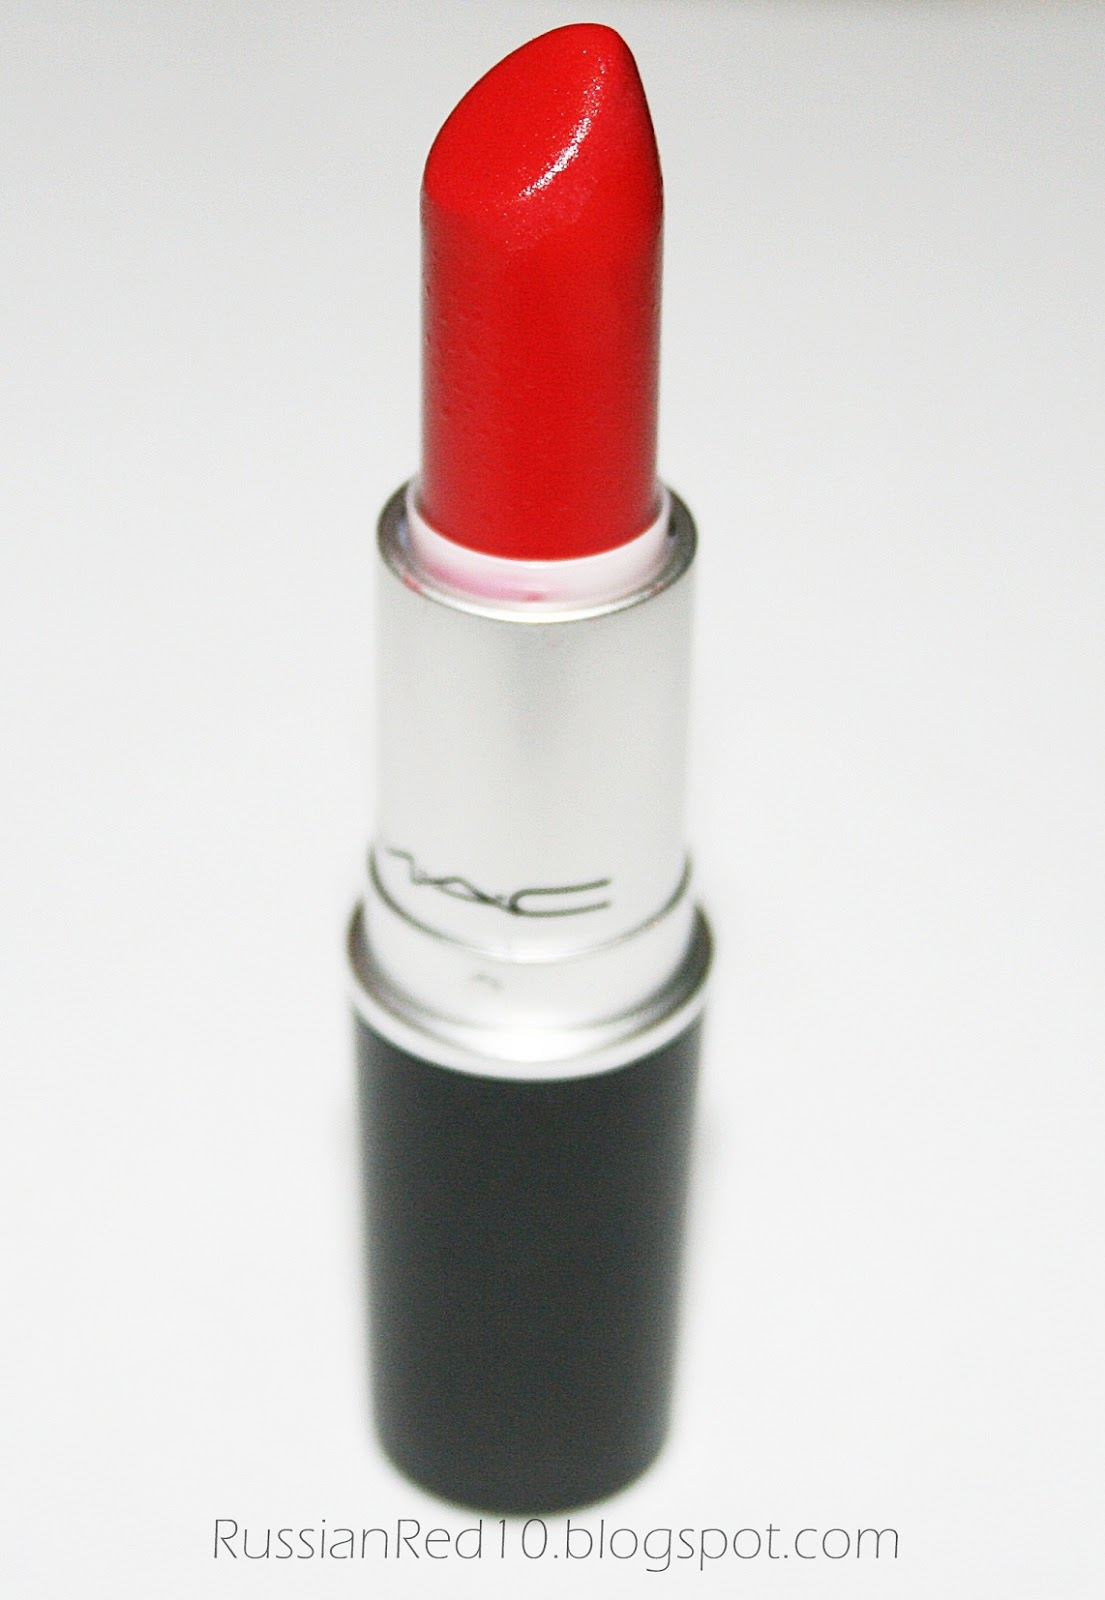 Mac Red Lipstick: The Face Guide: Review: MAC Russian Red Lipstick